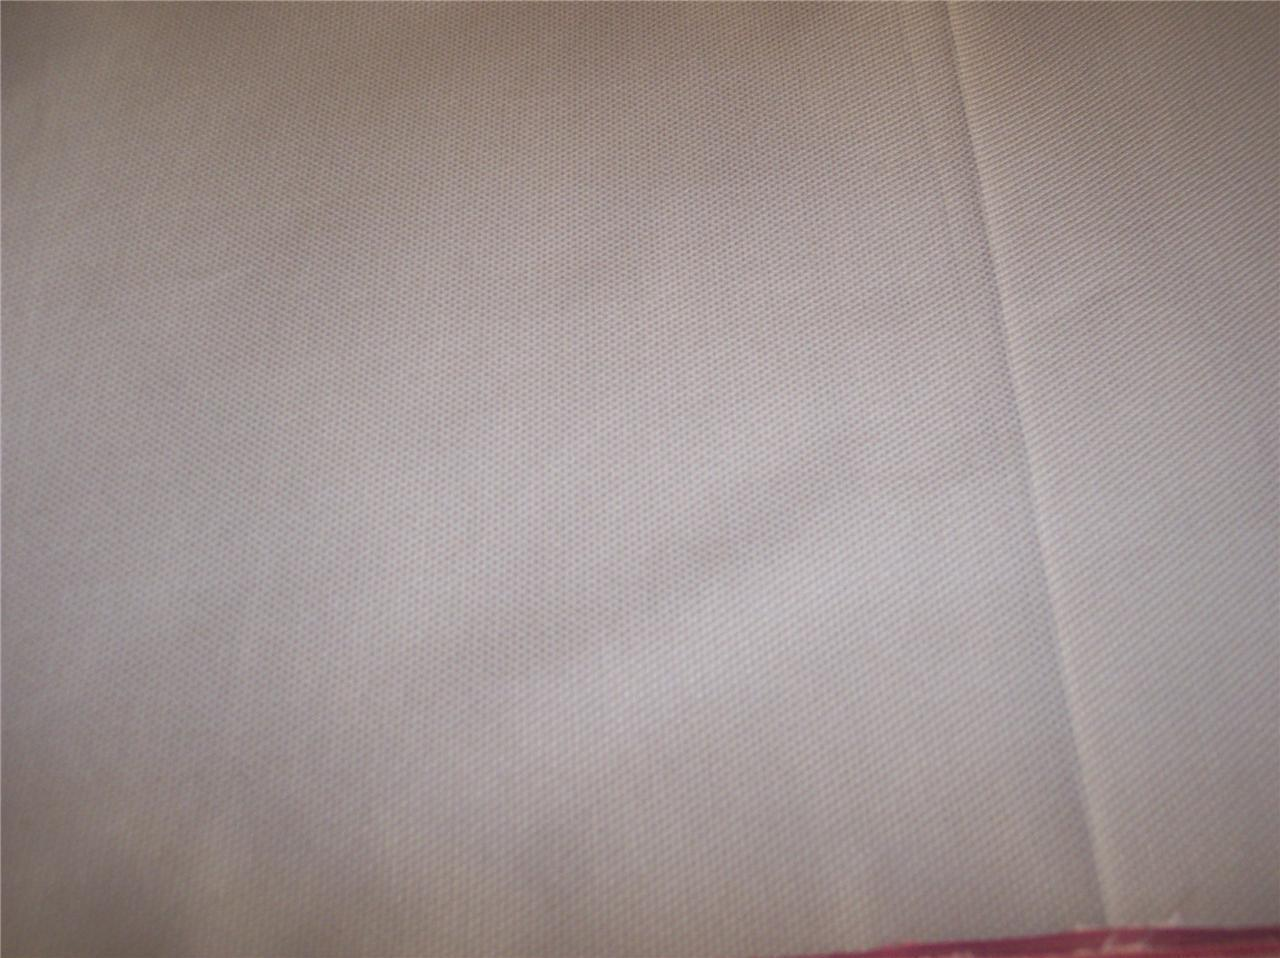 Beige Tan Nylon Fabric/Upholstery Fabric Remnant  R77